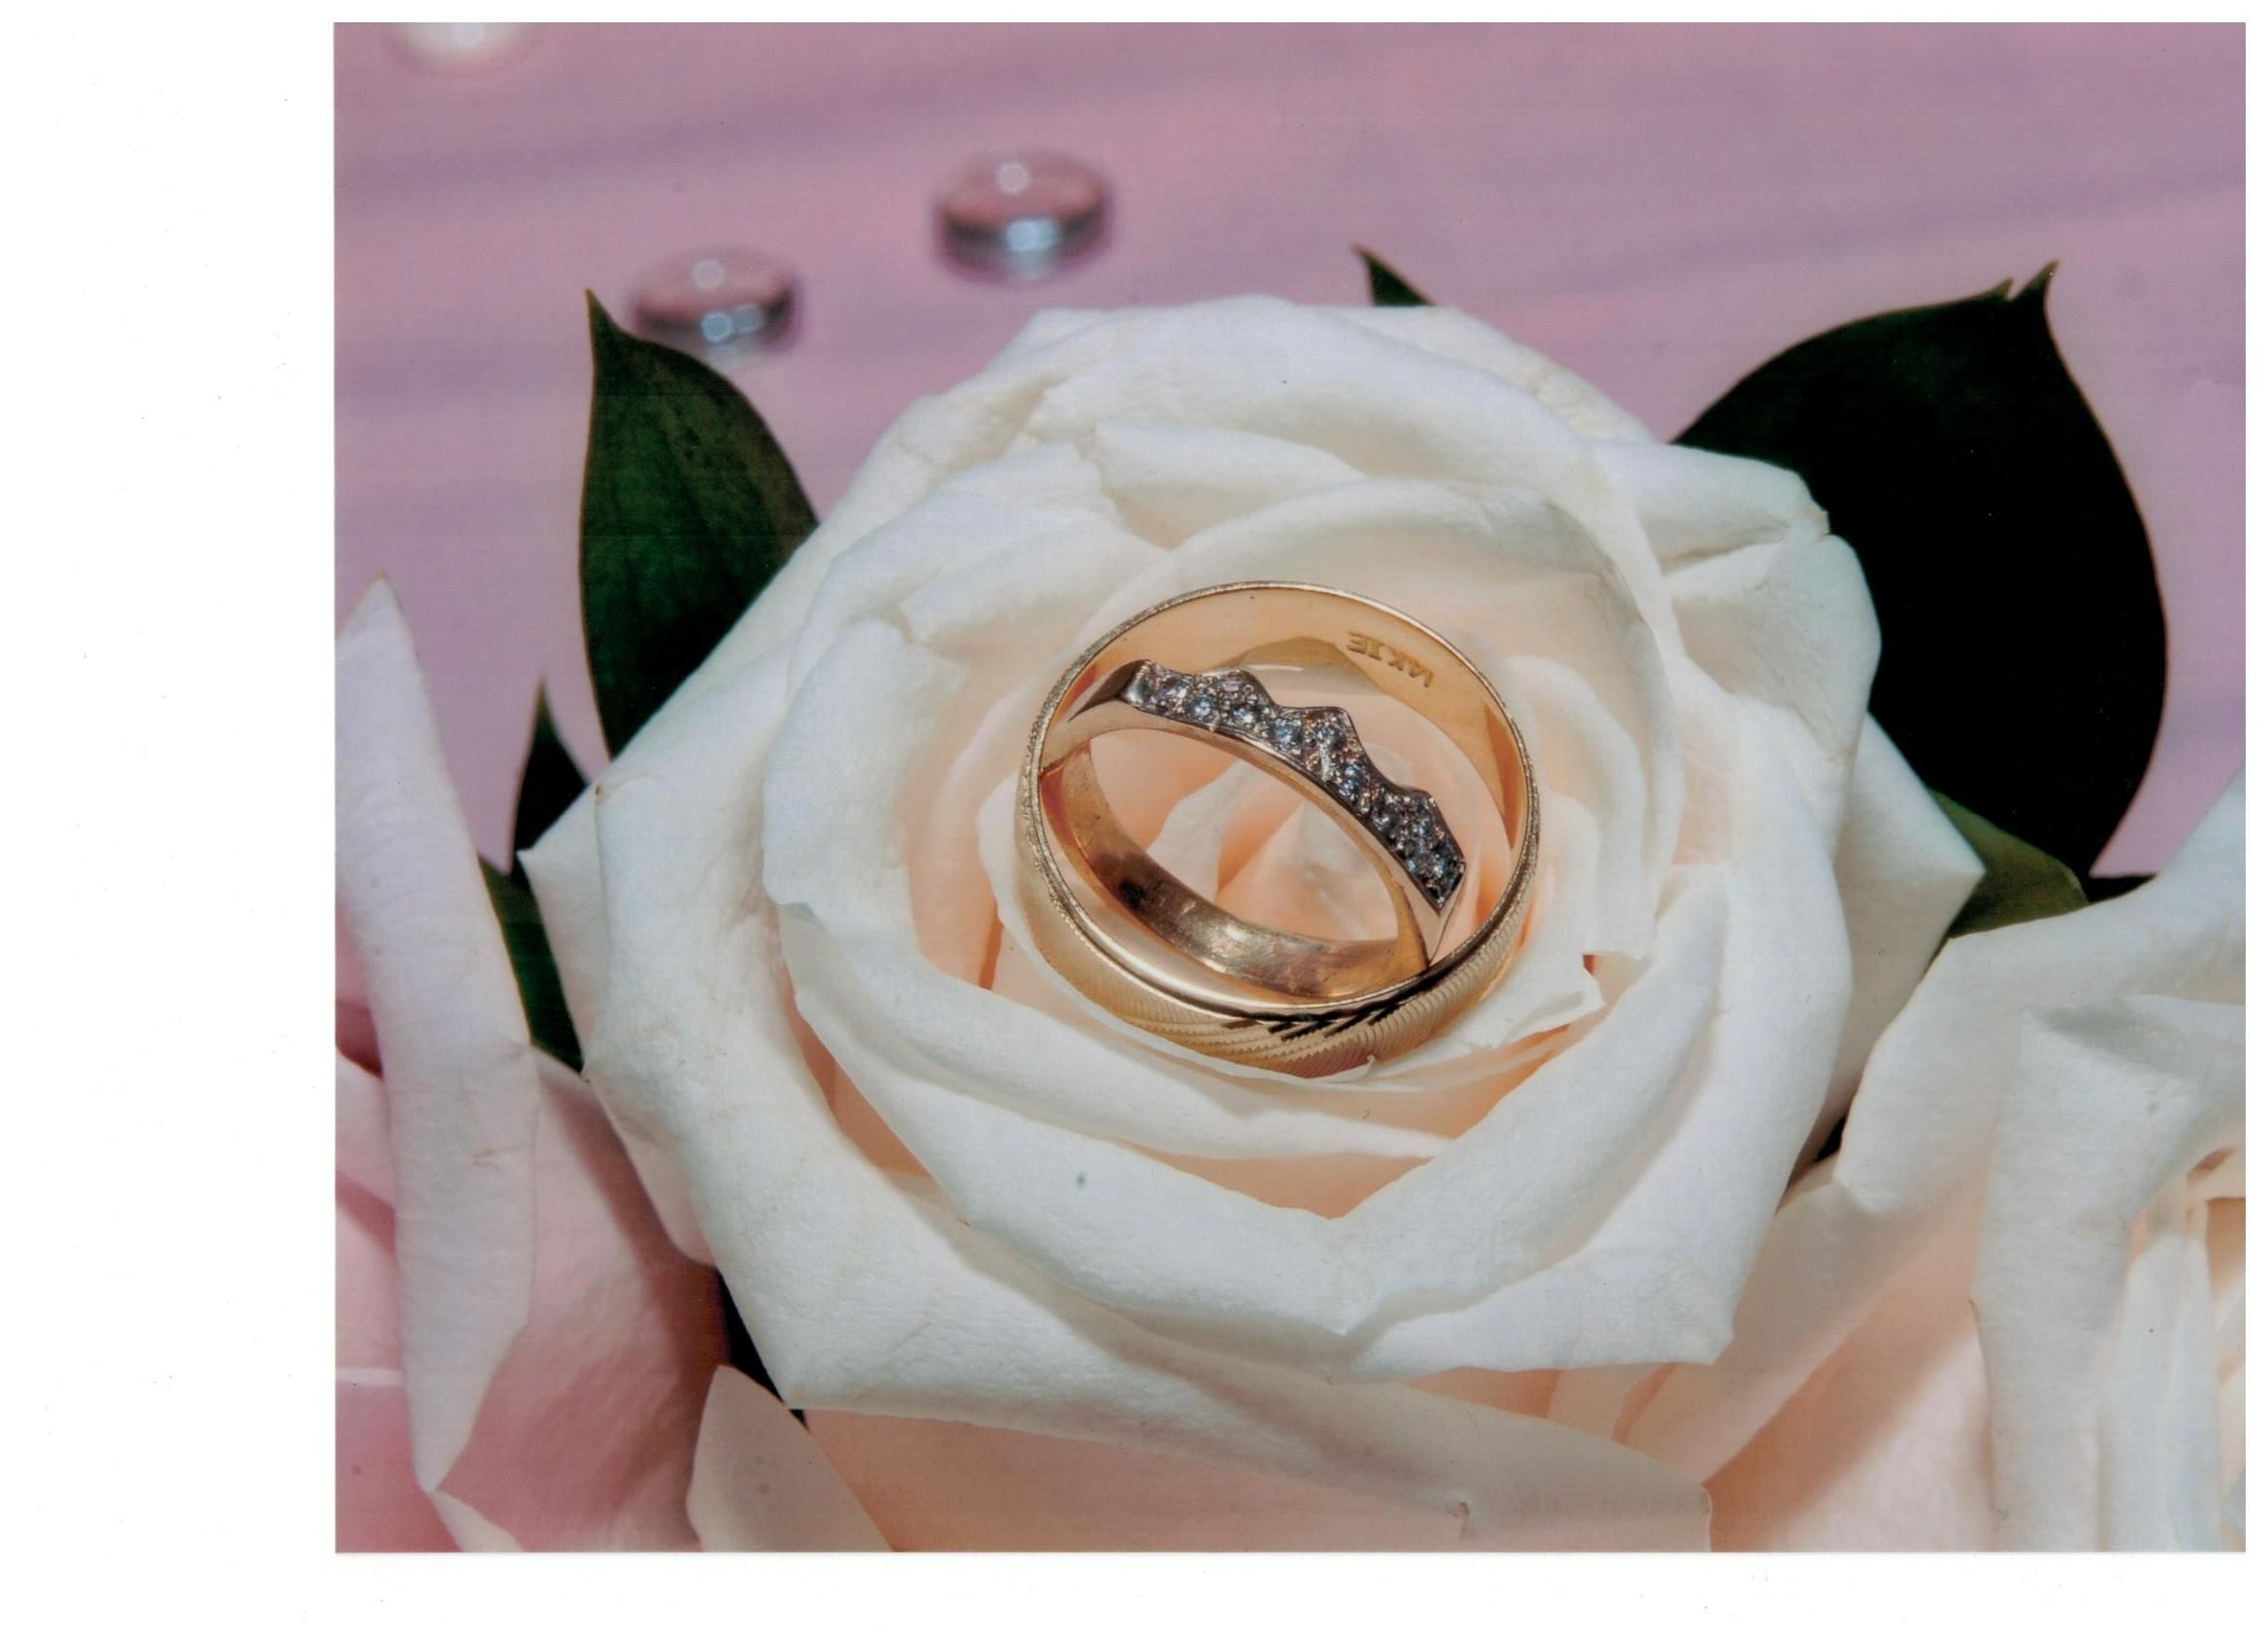 Custom made wedding band to match bride's engagement ring.  Photo of couple's wedding bands taken by wedding photographer.